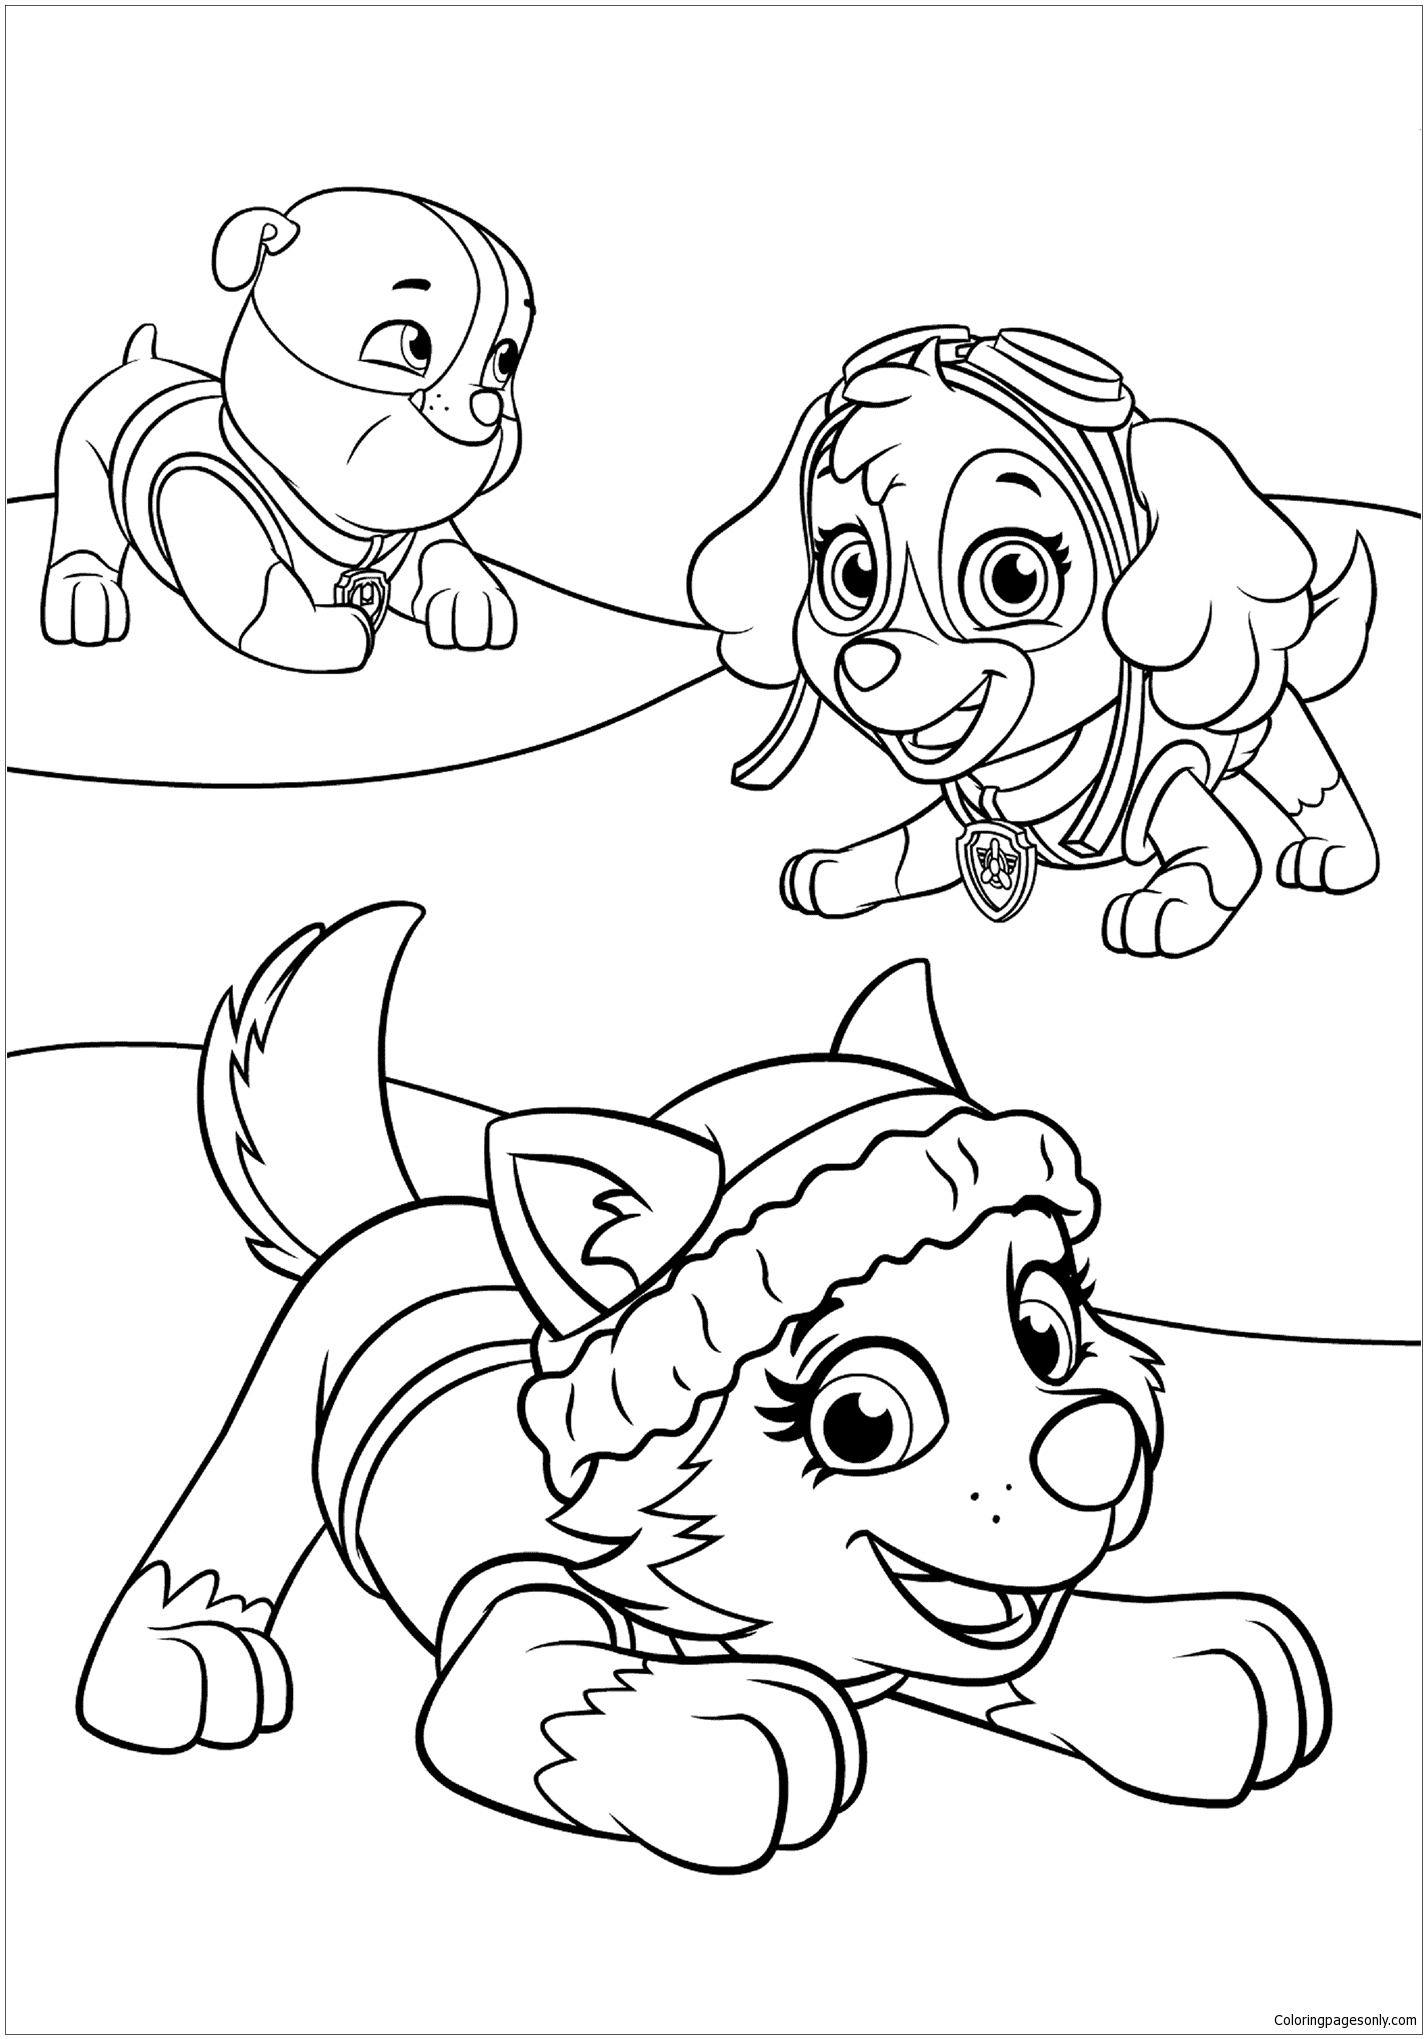 paw patrol free coloring pages printable paw patrol coloring pages free download on clipartmag coloring free printable paw patrol pages